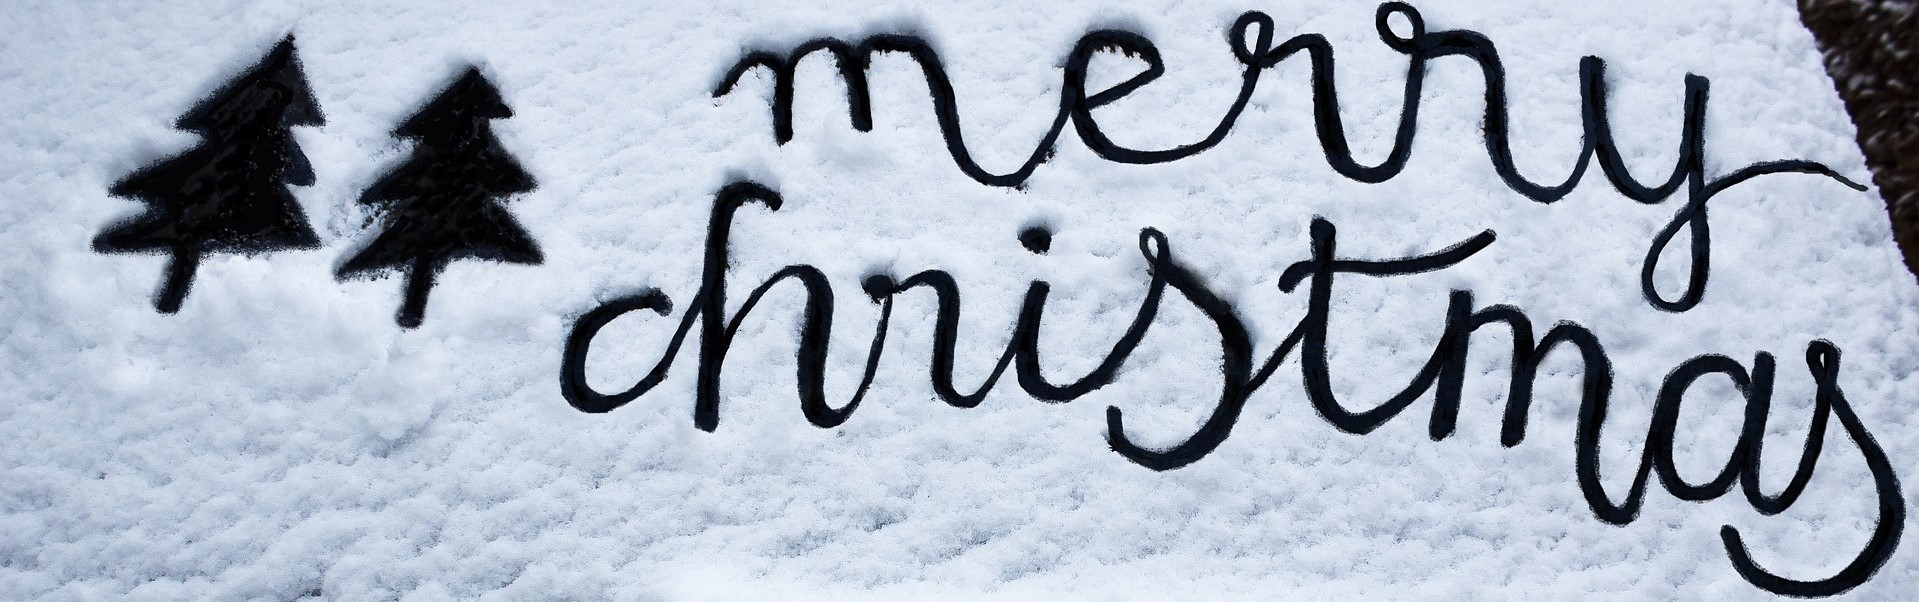 Merry Christmas Writing on a Snow | Breast Cancer Car Donations